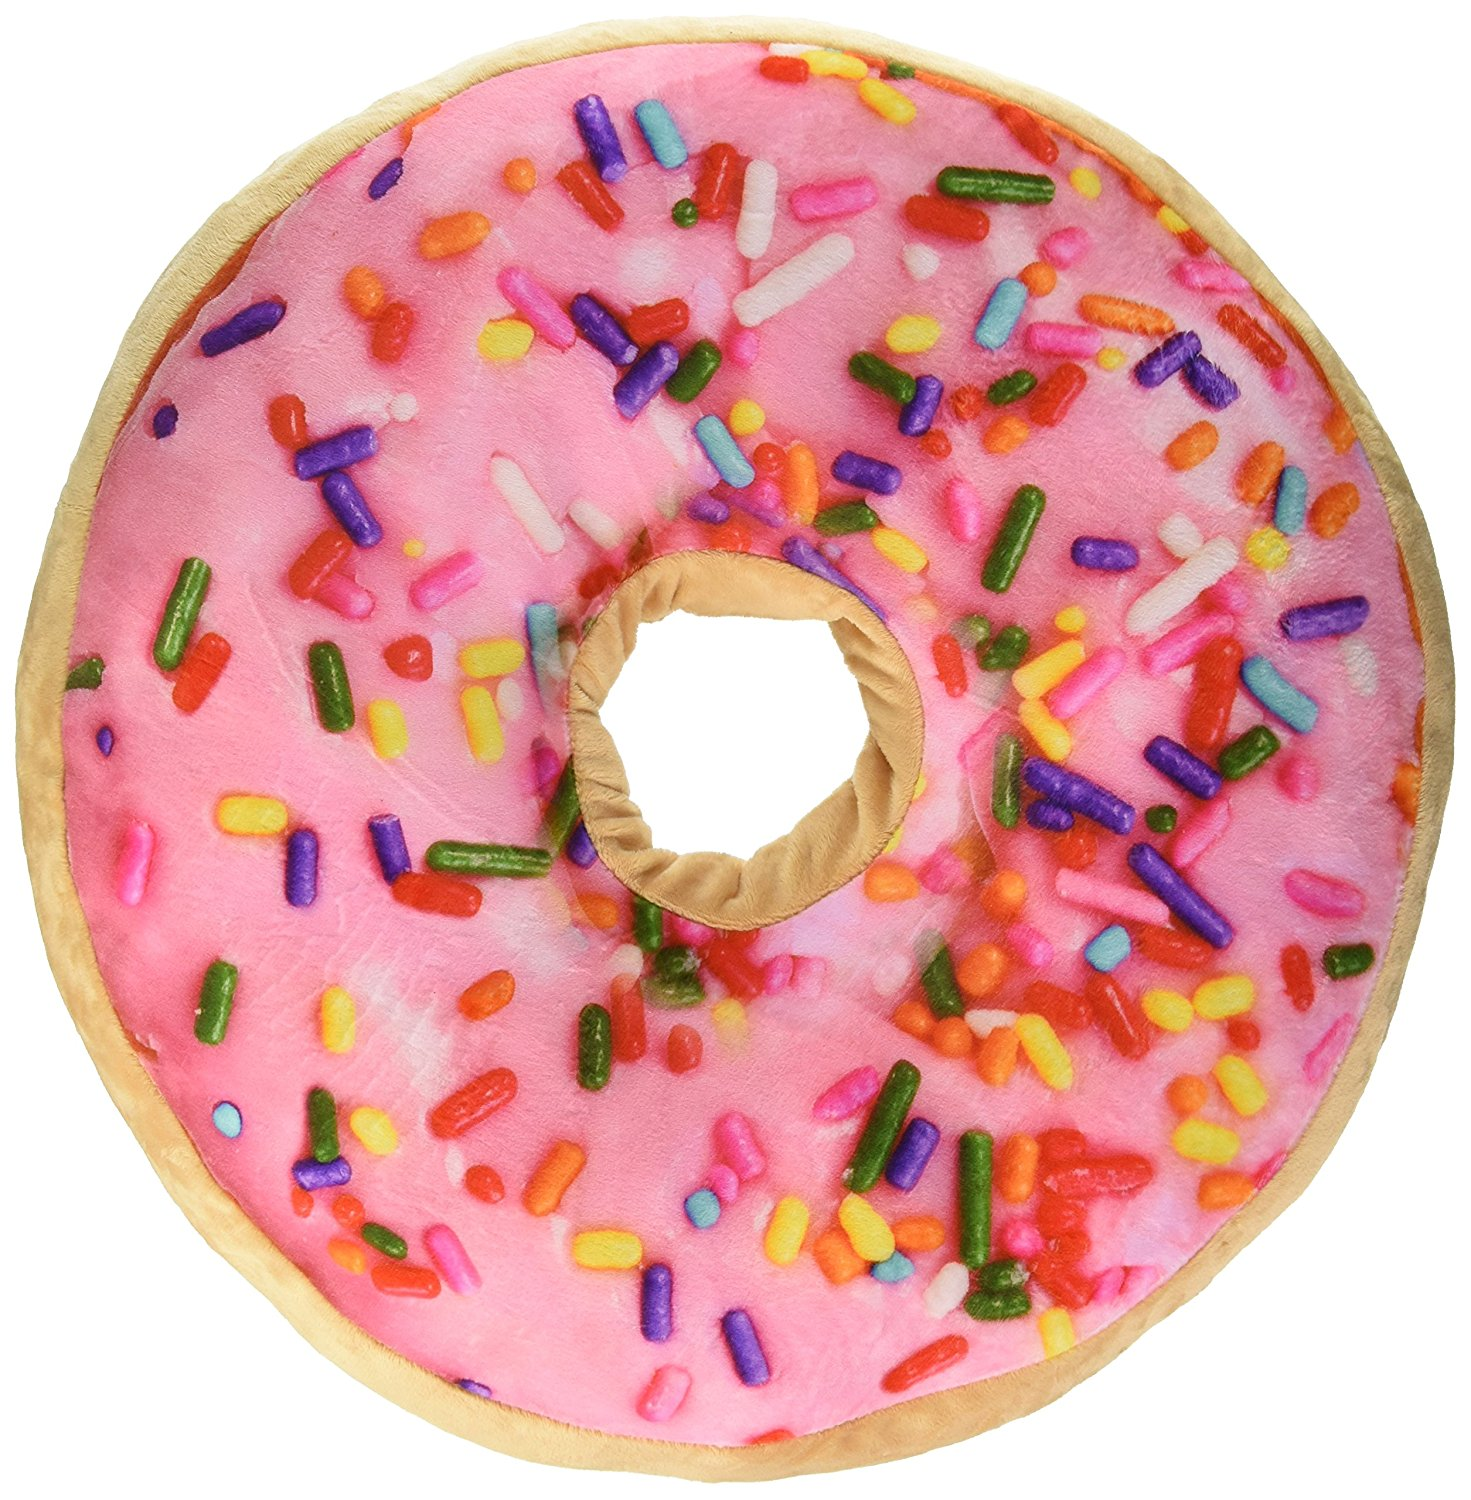 Amazon.com: Sprinkle Donut Pillow with Pink Frosting and Strawberry ...